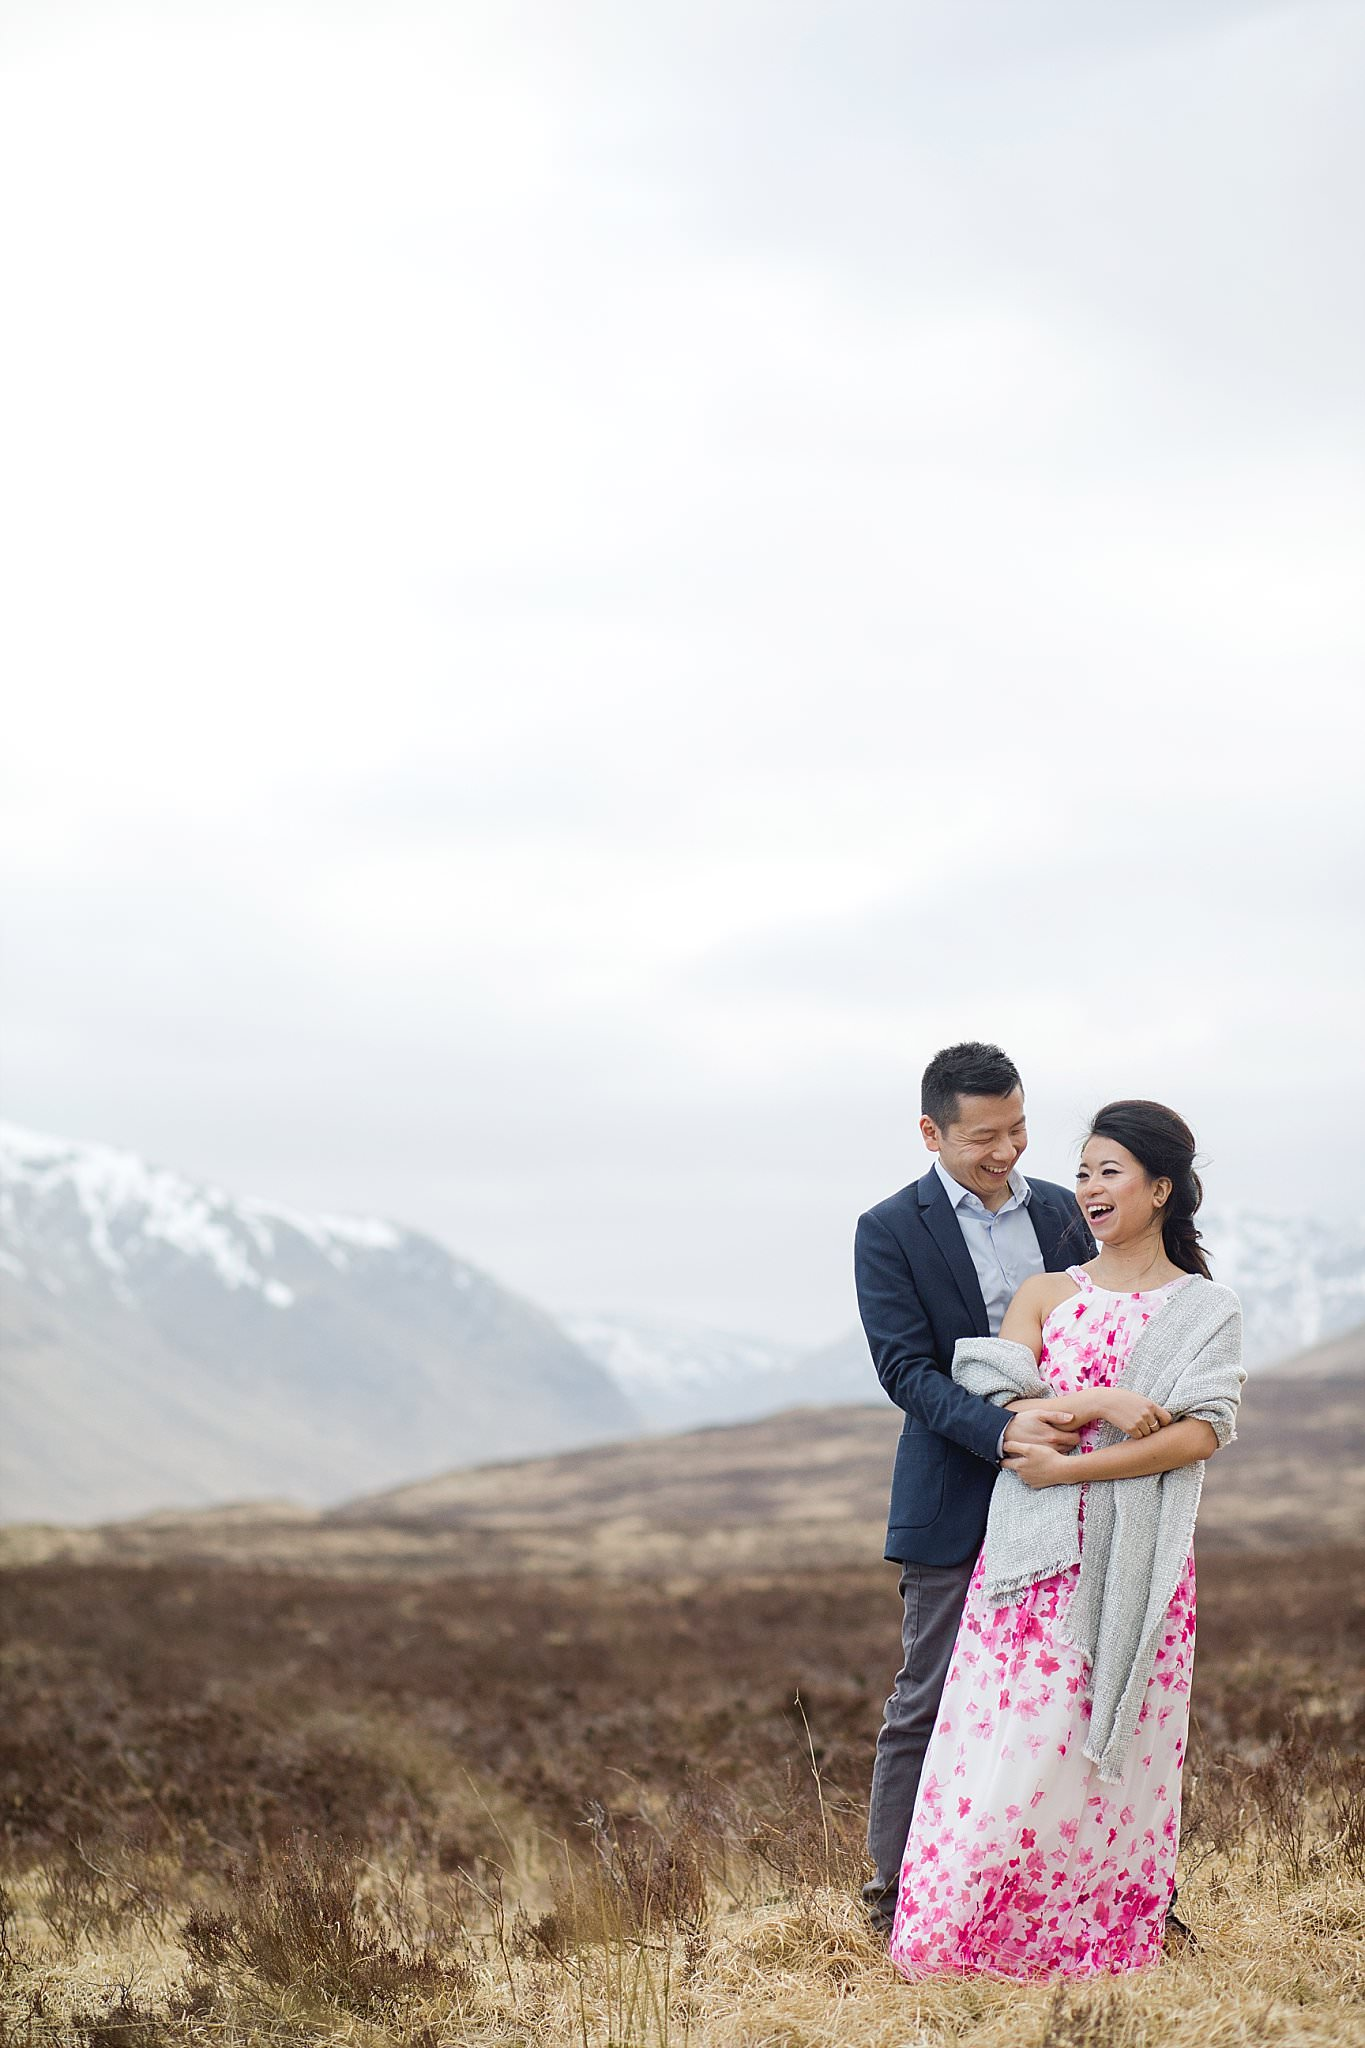 Glencoe,The Gibsons,engagement photographers scotland,fine art photographers scotland,romantic engagement shoot scotland,scotland,shoot glen etive,styled engagement shoot,